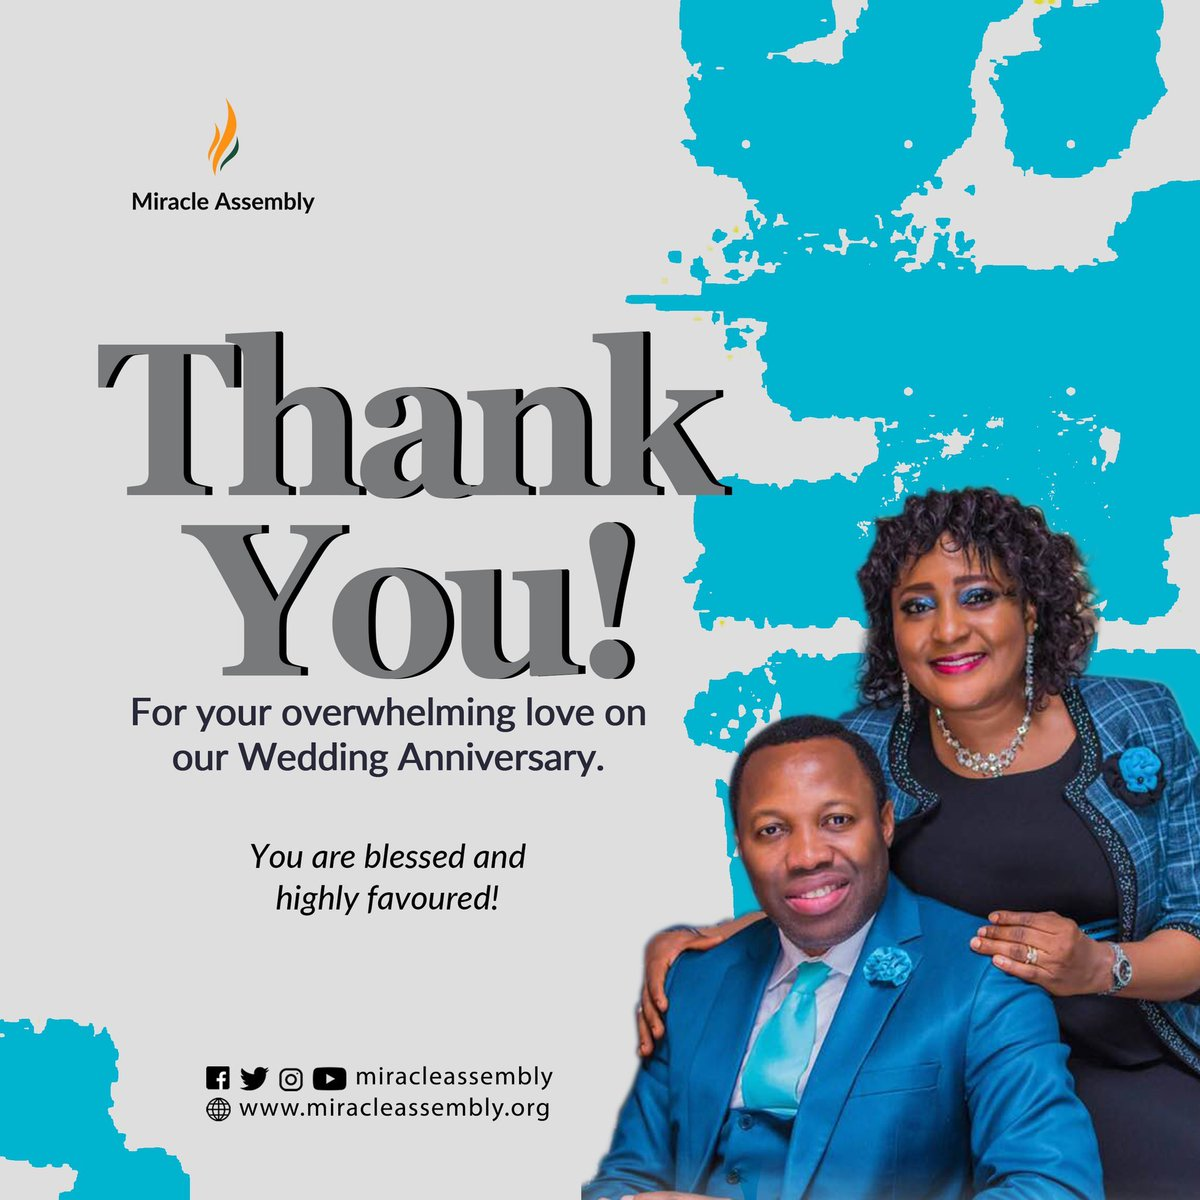 T H A N K   Y O U  The show of love was overwhelming and we are grateful.  Men and Women will gather to celebrate you this year, in Jesus' Name.   You are Blessed and Highly Favoured!  #miracleassembly #qualityliving #elevation #weddinganniversary #happymarriedlife #celebration